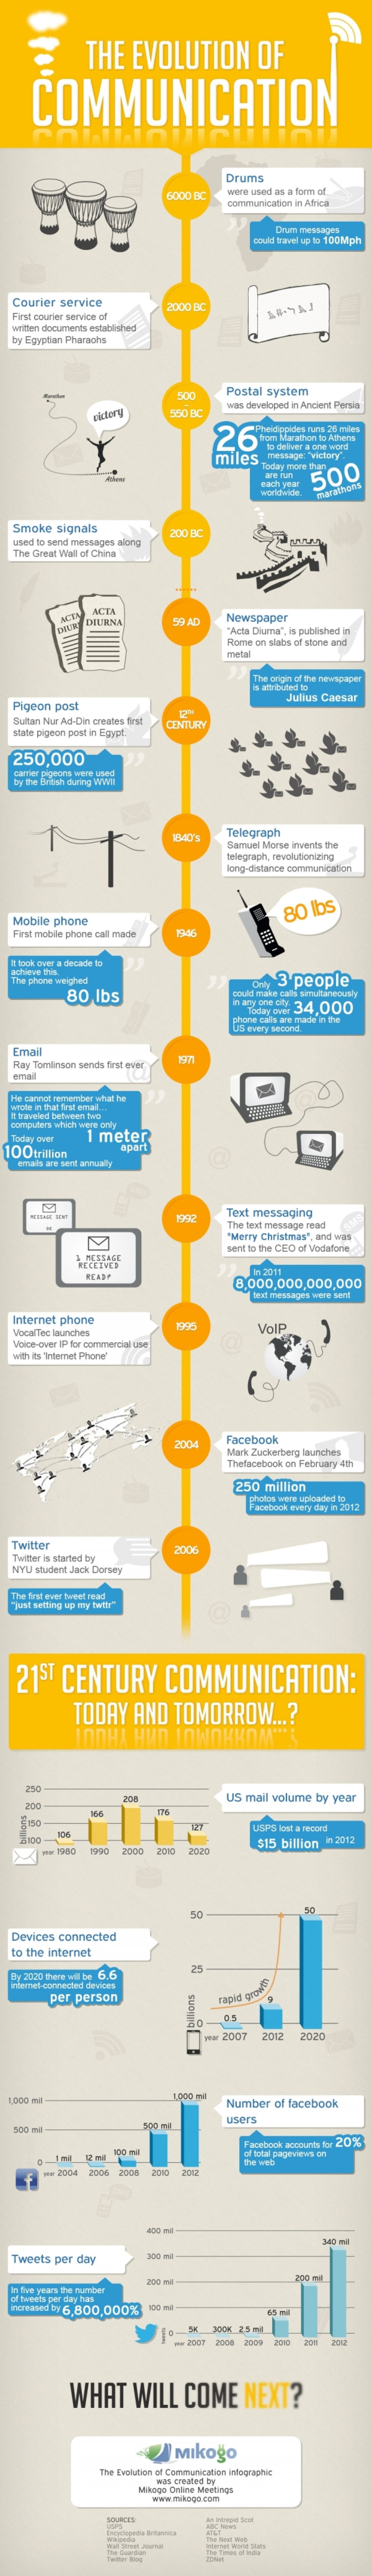 The Evolution of Communication Infographic